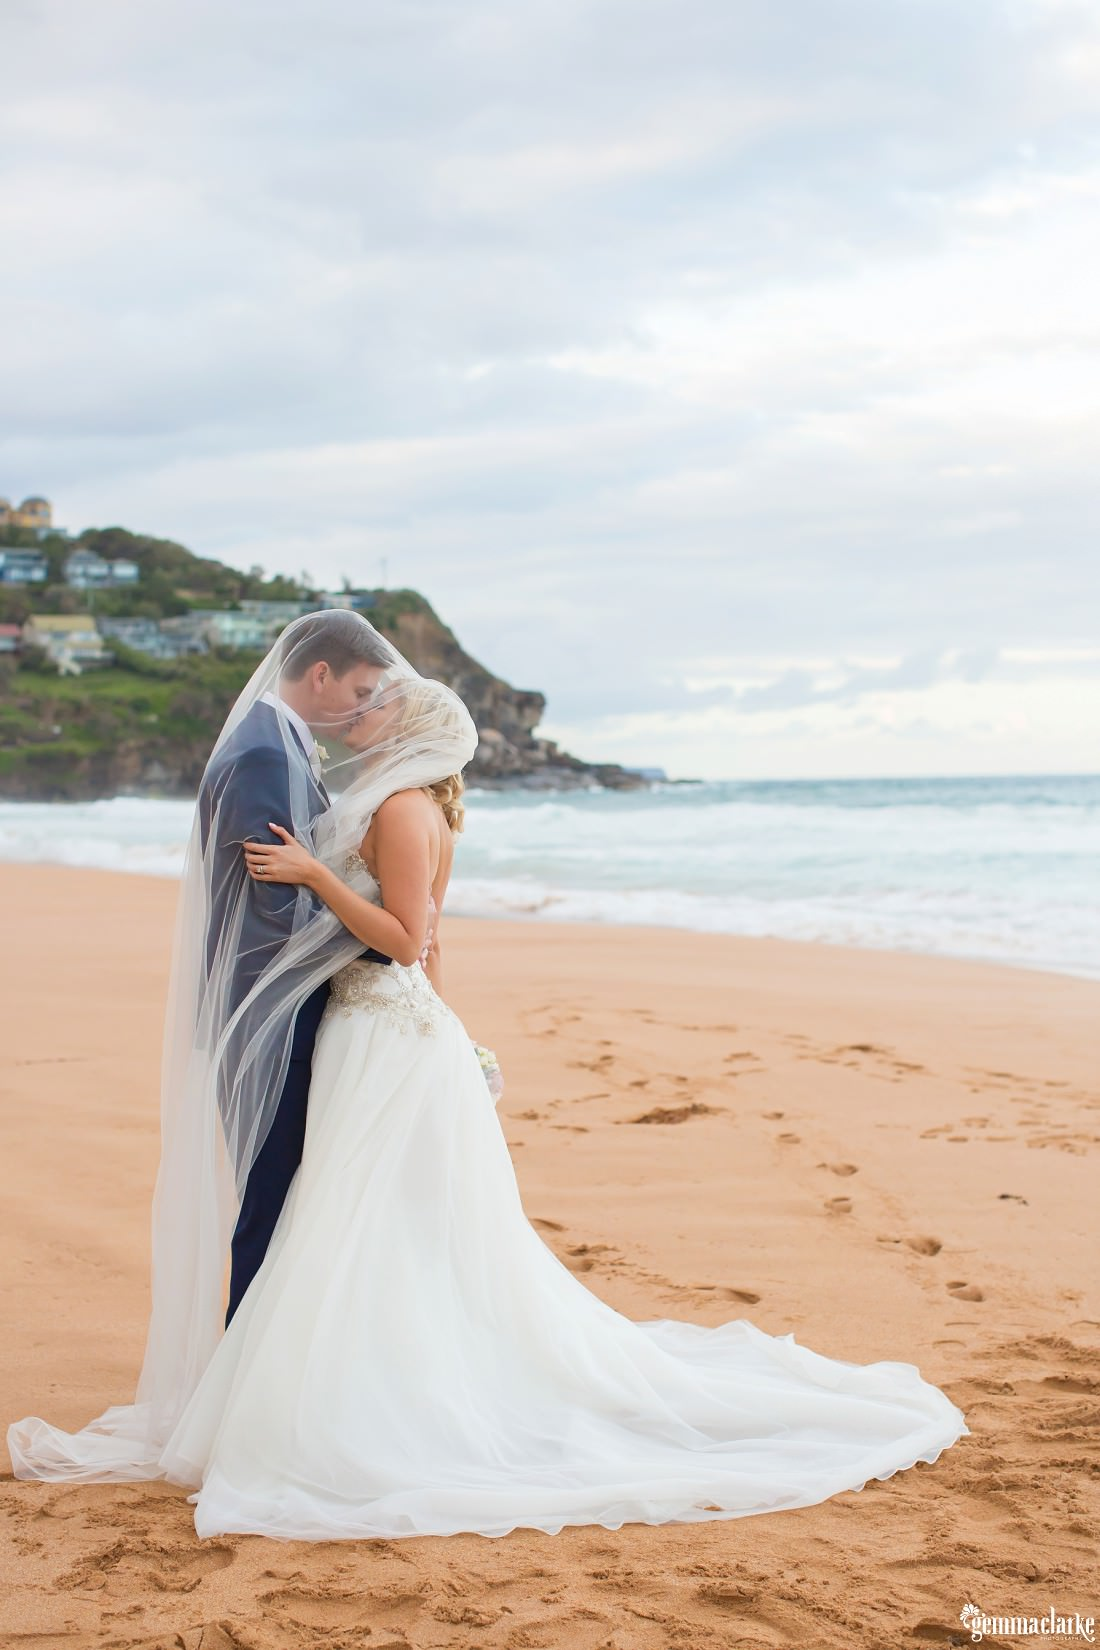 A bride and groom underneath the bride's veil sharing a kiss on Whale Beach